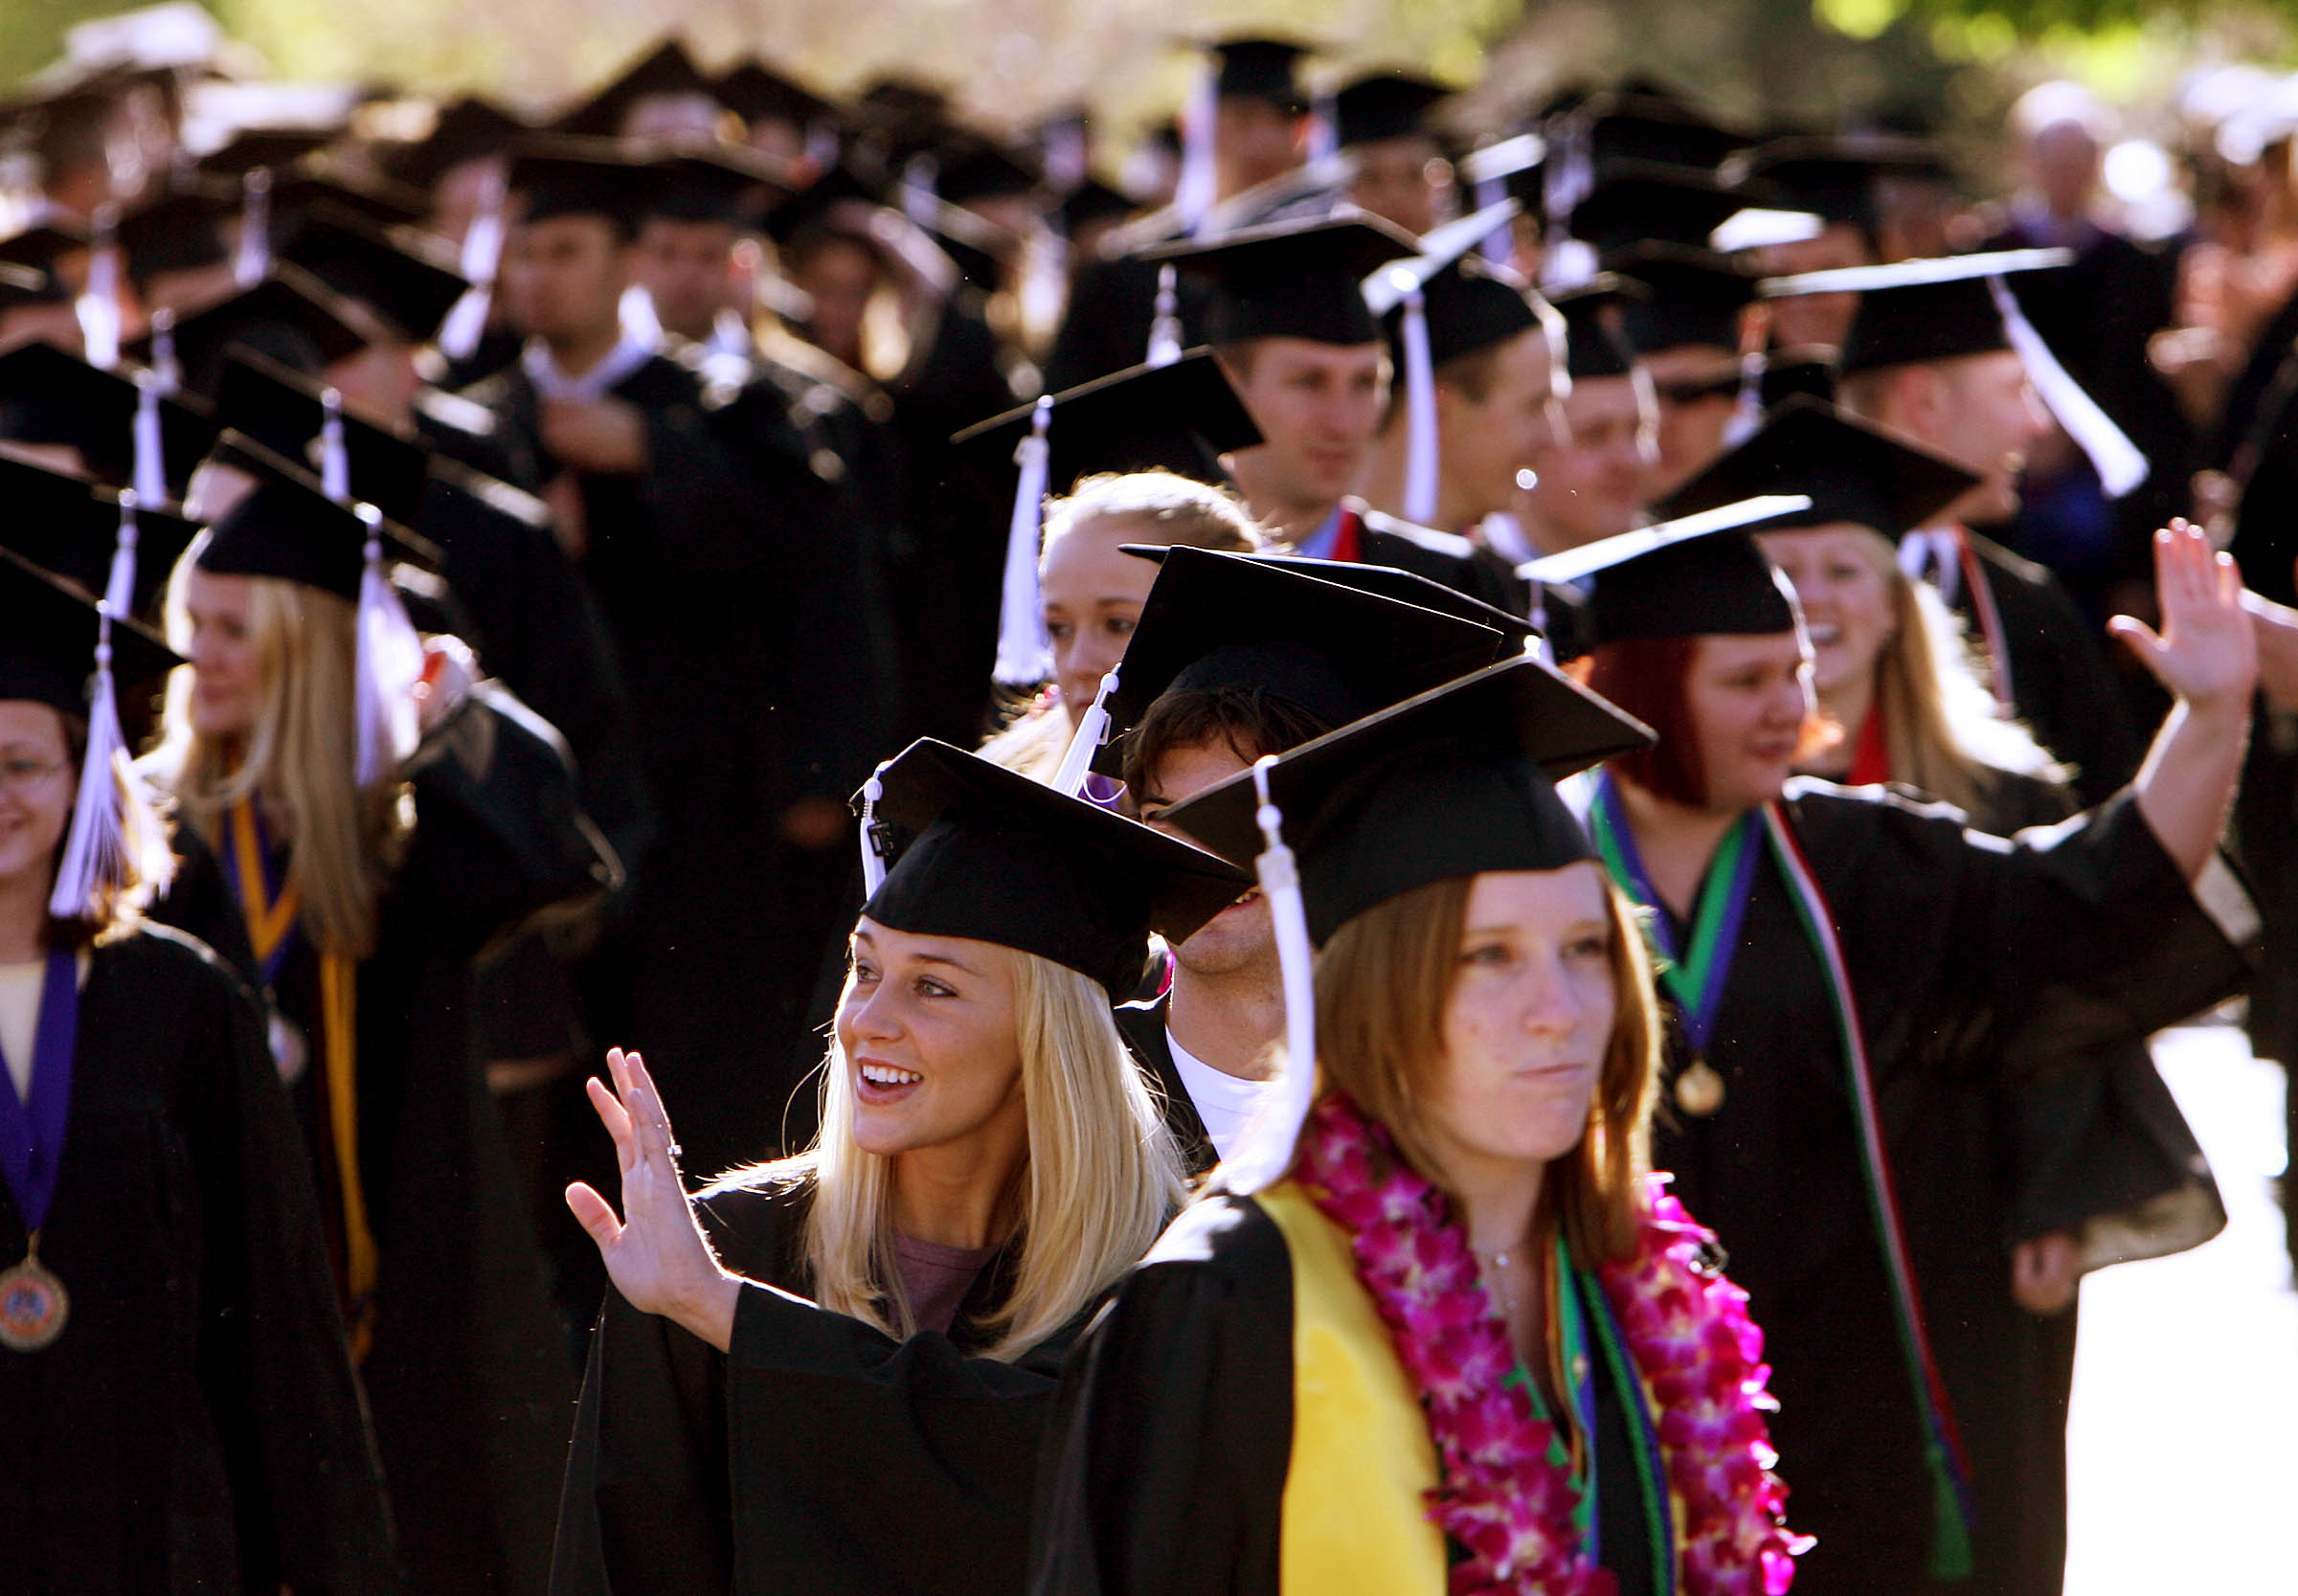 Graduates wave and look for family and friends as they take part in the procession at the beginning of Southern Utah University Commencement in Cedar City, Utah, May 6, 2006. photo by Ravell Call, Deseret Morning News.